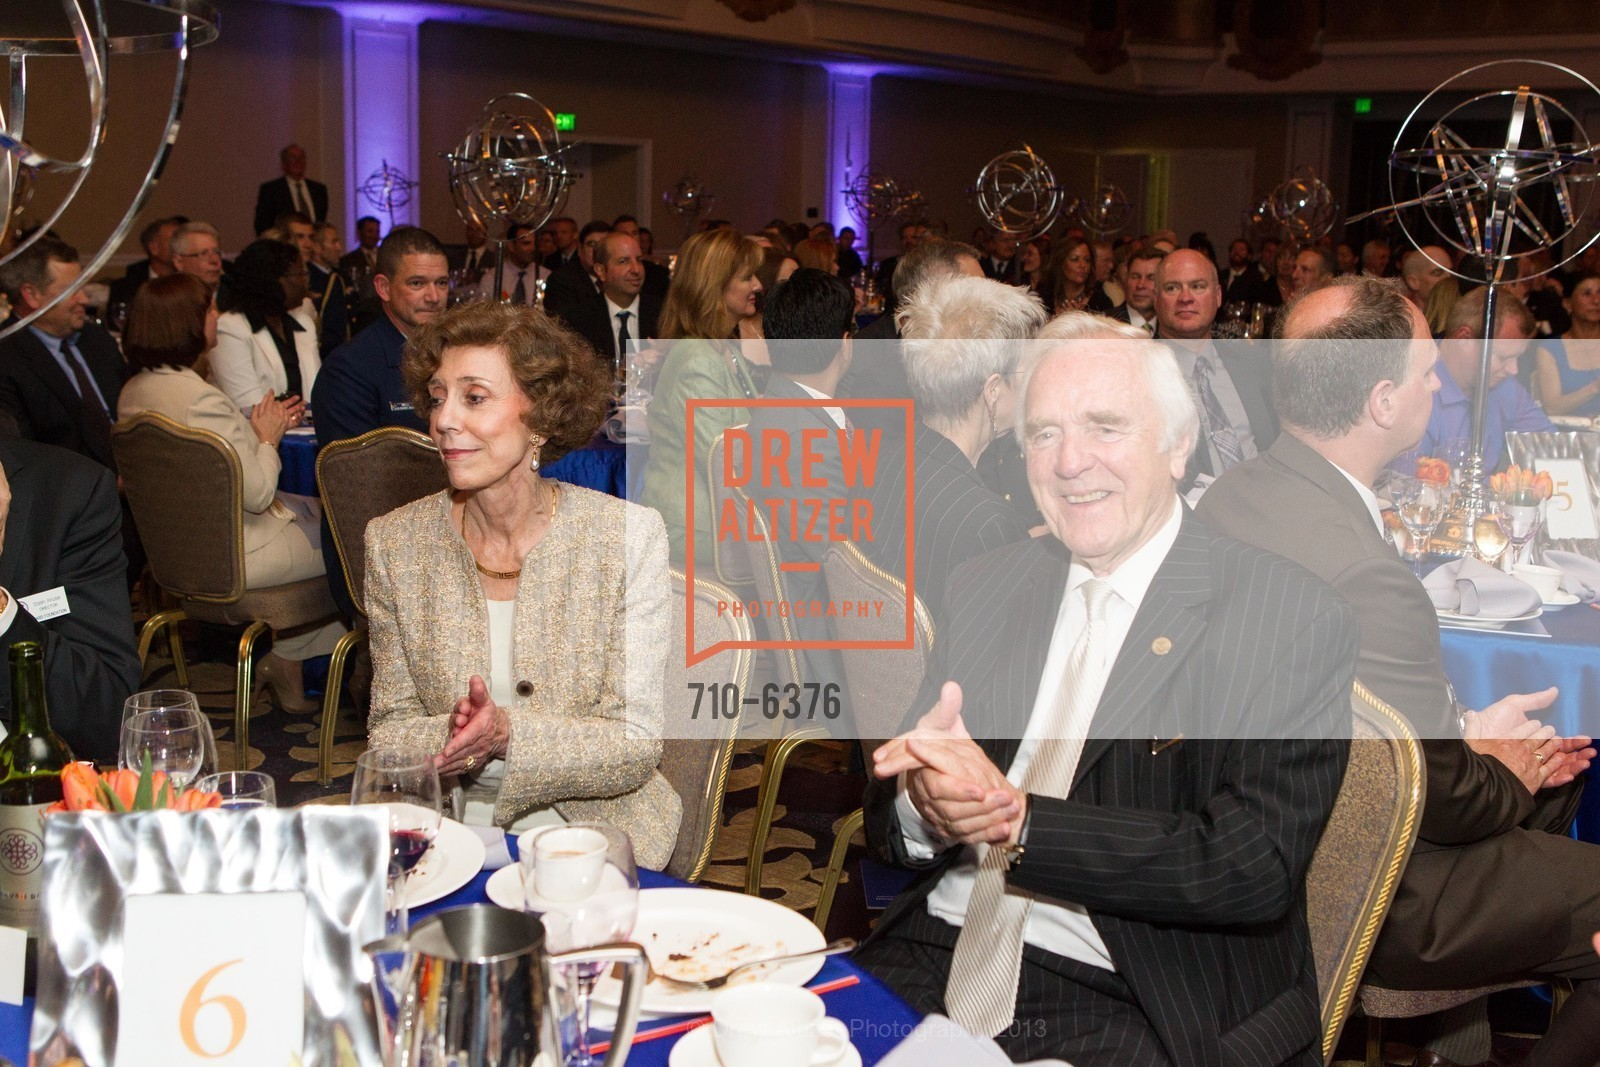 Extras, COAST GUARD FOUNDATION Presents Pacific Awards Dinner, April 25th, 2013, Photo